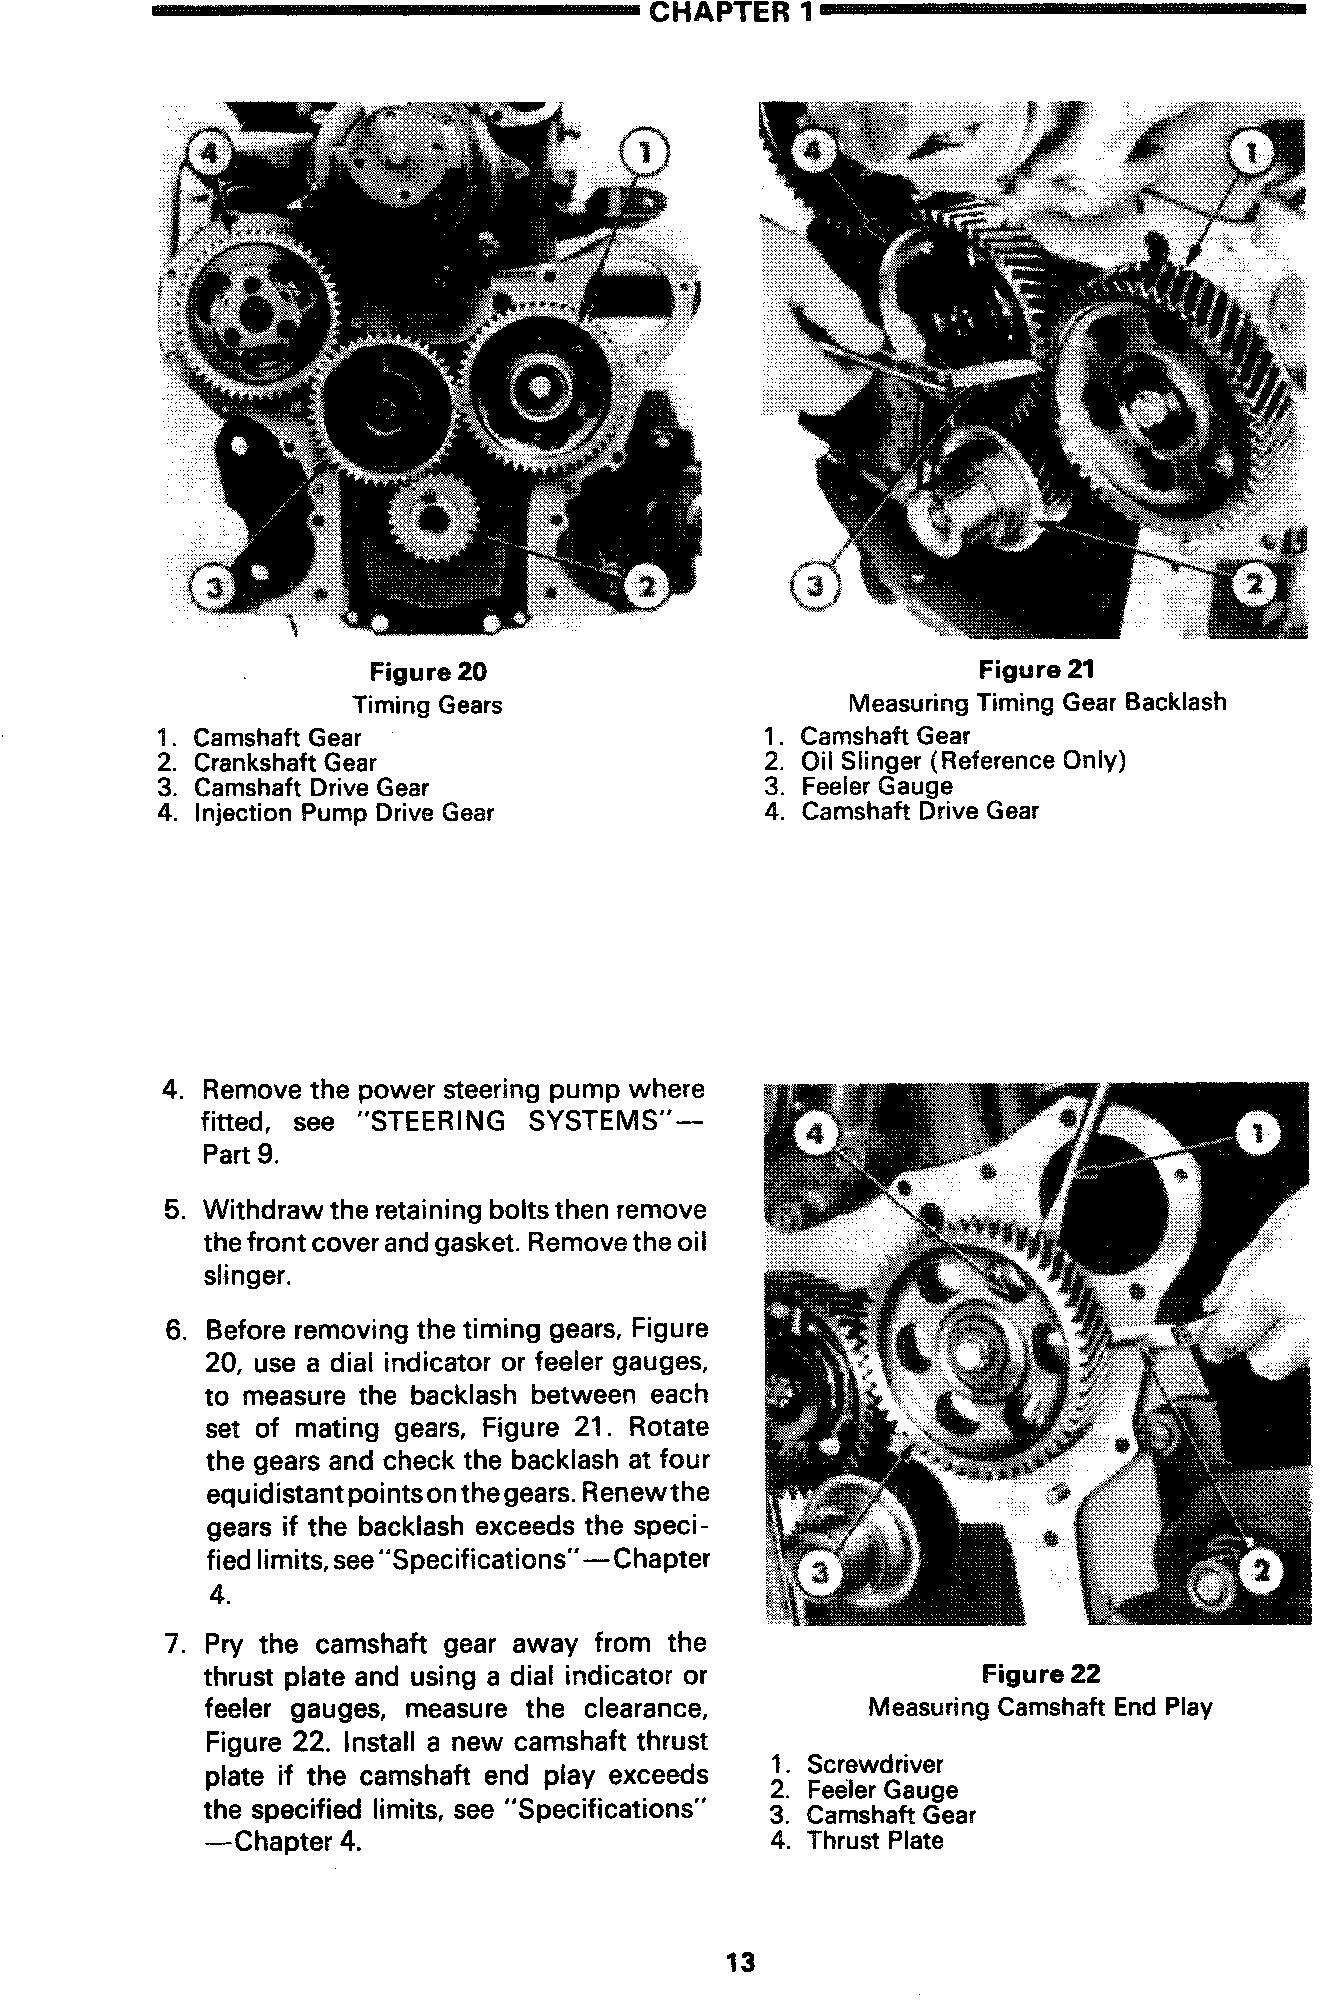 Ford 2600, 3600, 4100,4600, 5600,5900, 6600,6700, 7600,7700 Tractor Complete Service Manual (SE3660) - 2